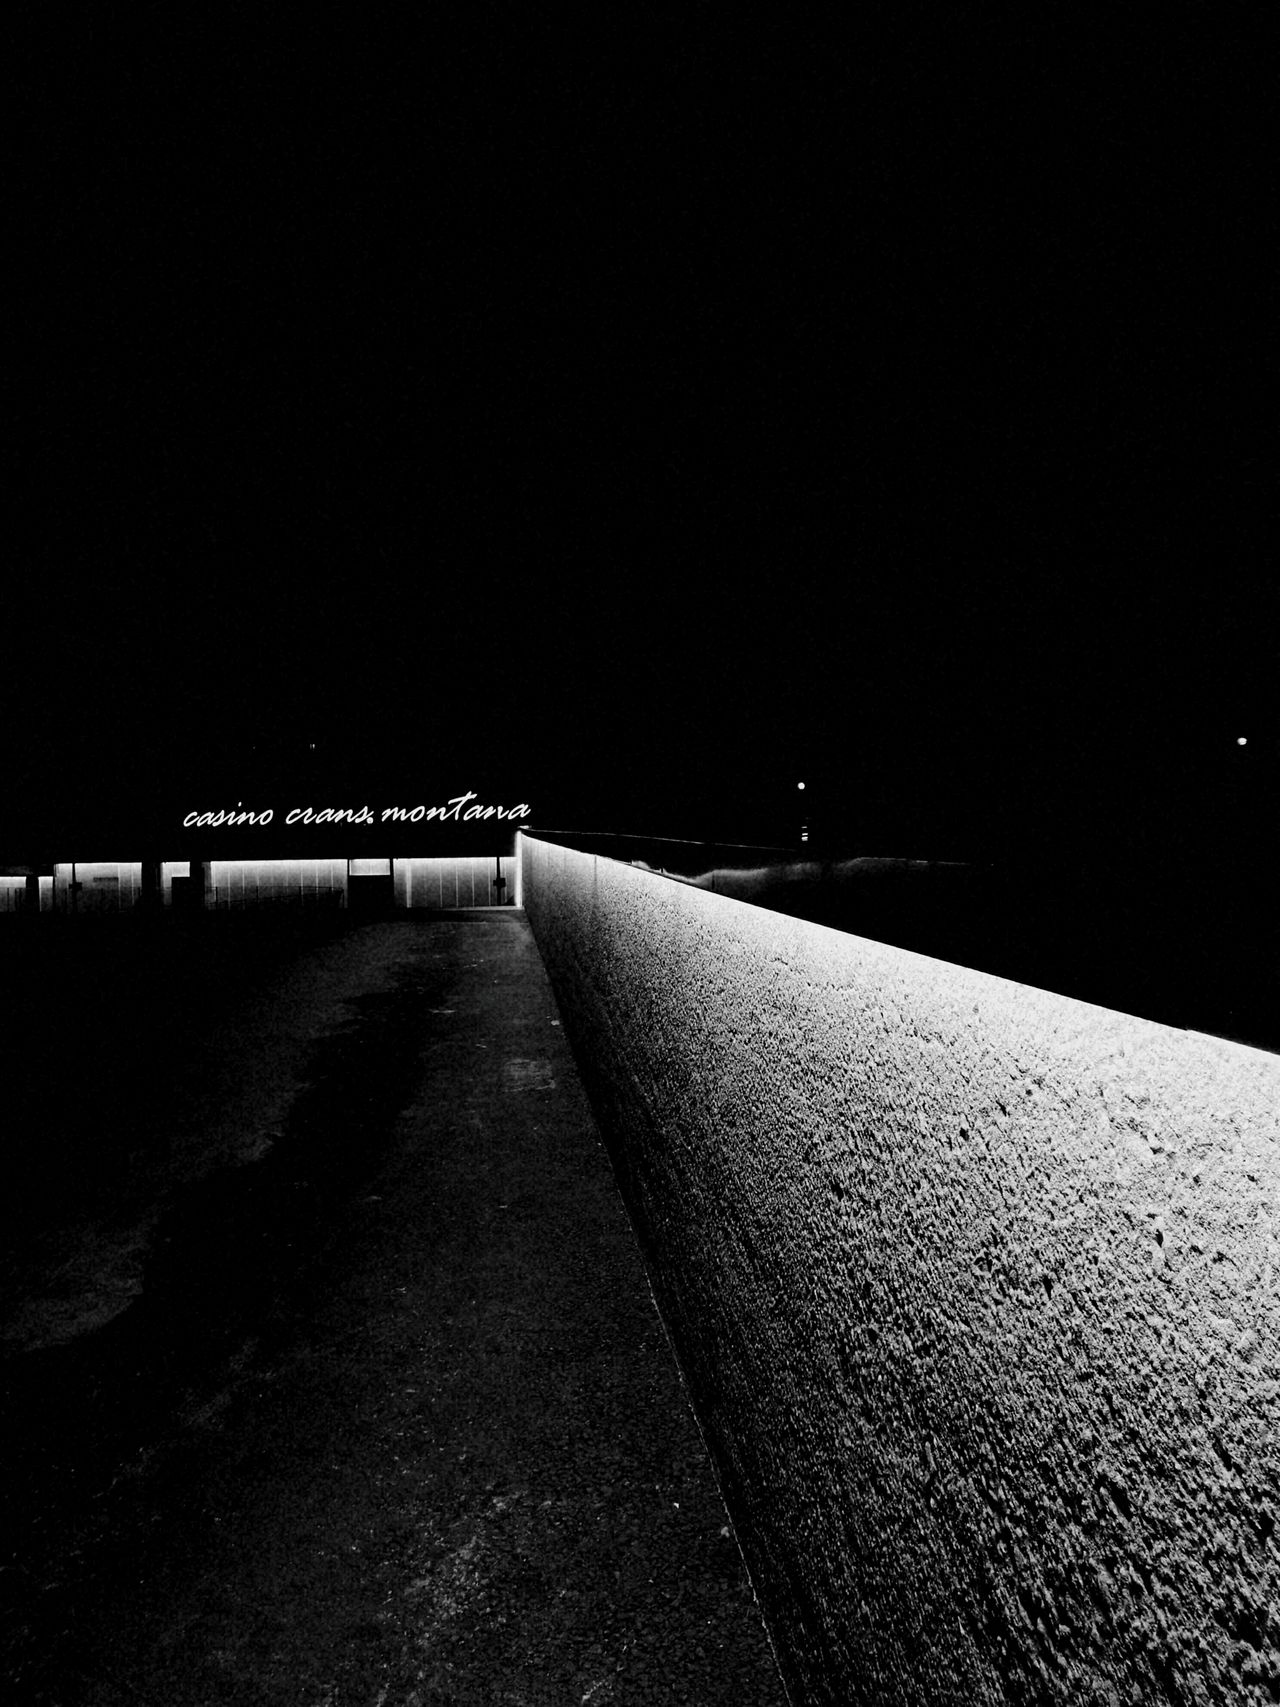 Walking around the city, looking for my christmas spirit No People Night Scenics HuaweiP9 Leica Lens Christmas Night Shot Optics Nightlife Nightclub Cold Night City Alps Adapted To The City